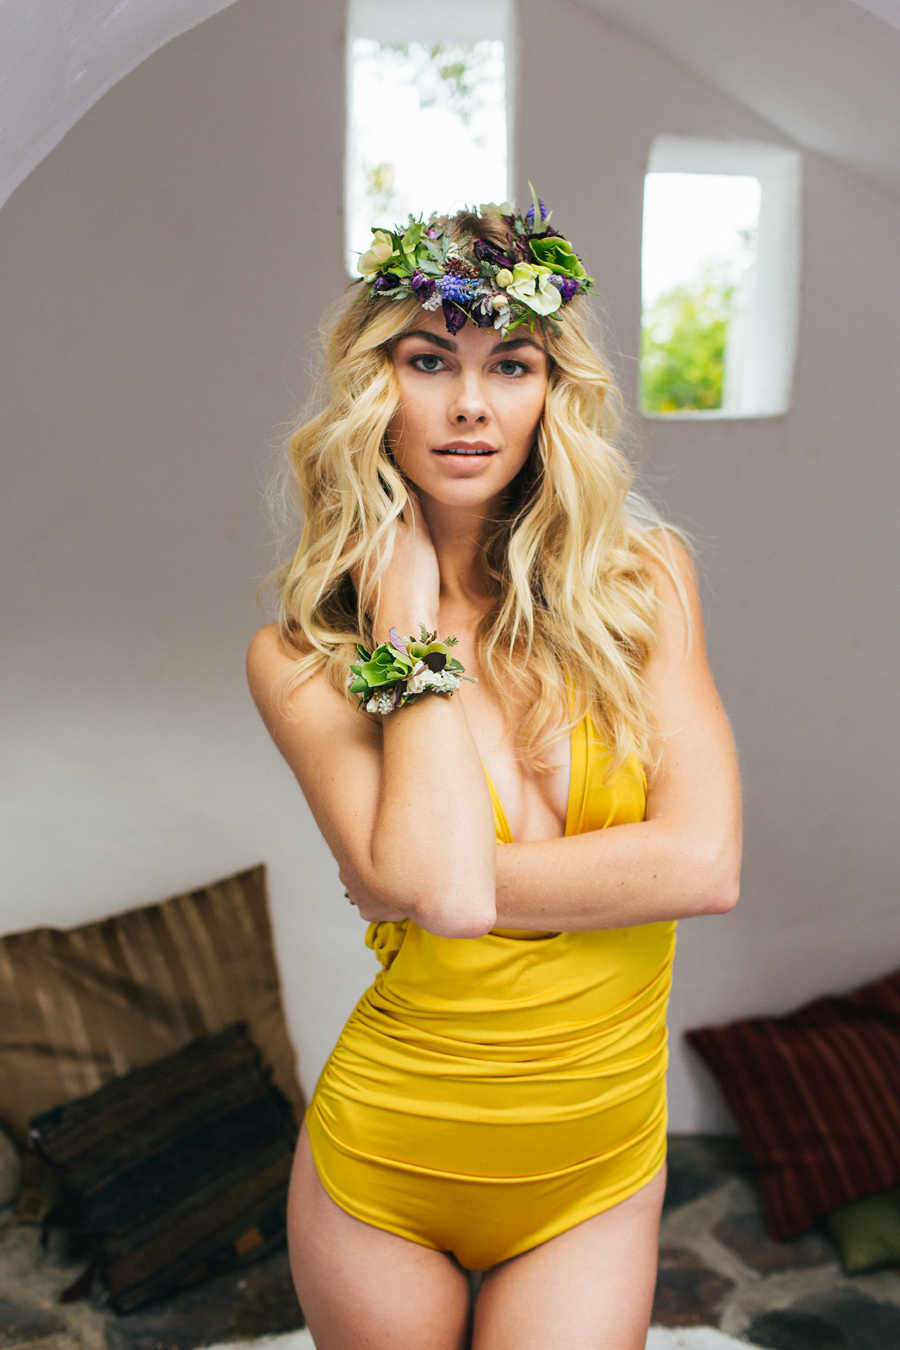 Honeymoon ideas / Photography: Kacie Q. Photography / Styling + Planning: Katalin Green / Swimwear: Nicolita Swimwear / Location: Korakia Pensione, Palm Springs / Necklace: Mountainside Designs / Ring: Fly Free Designs / Headpiece: Jennifer Behr / Flowers: Katalin Green + Mac's Floral